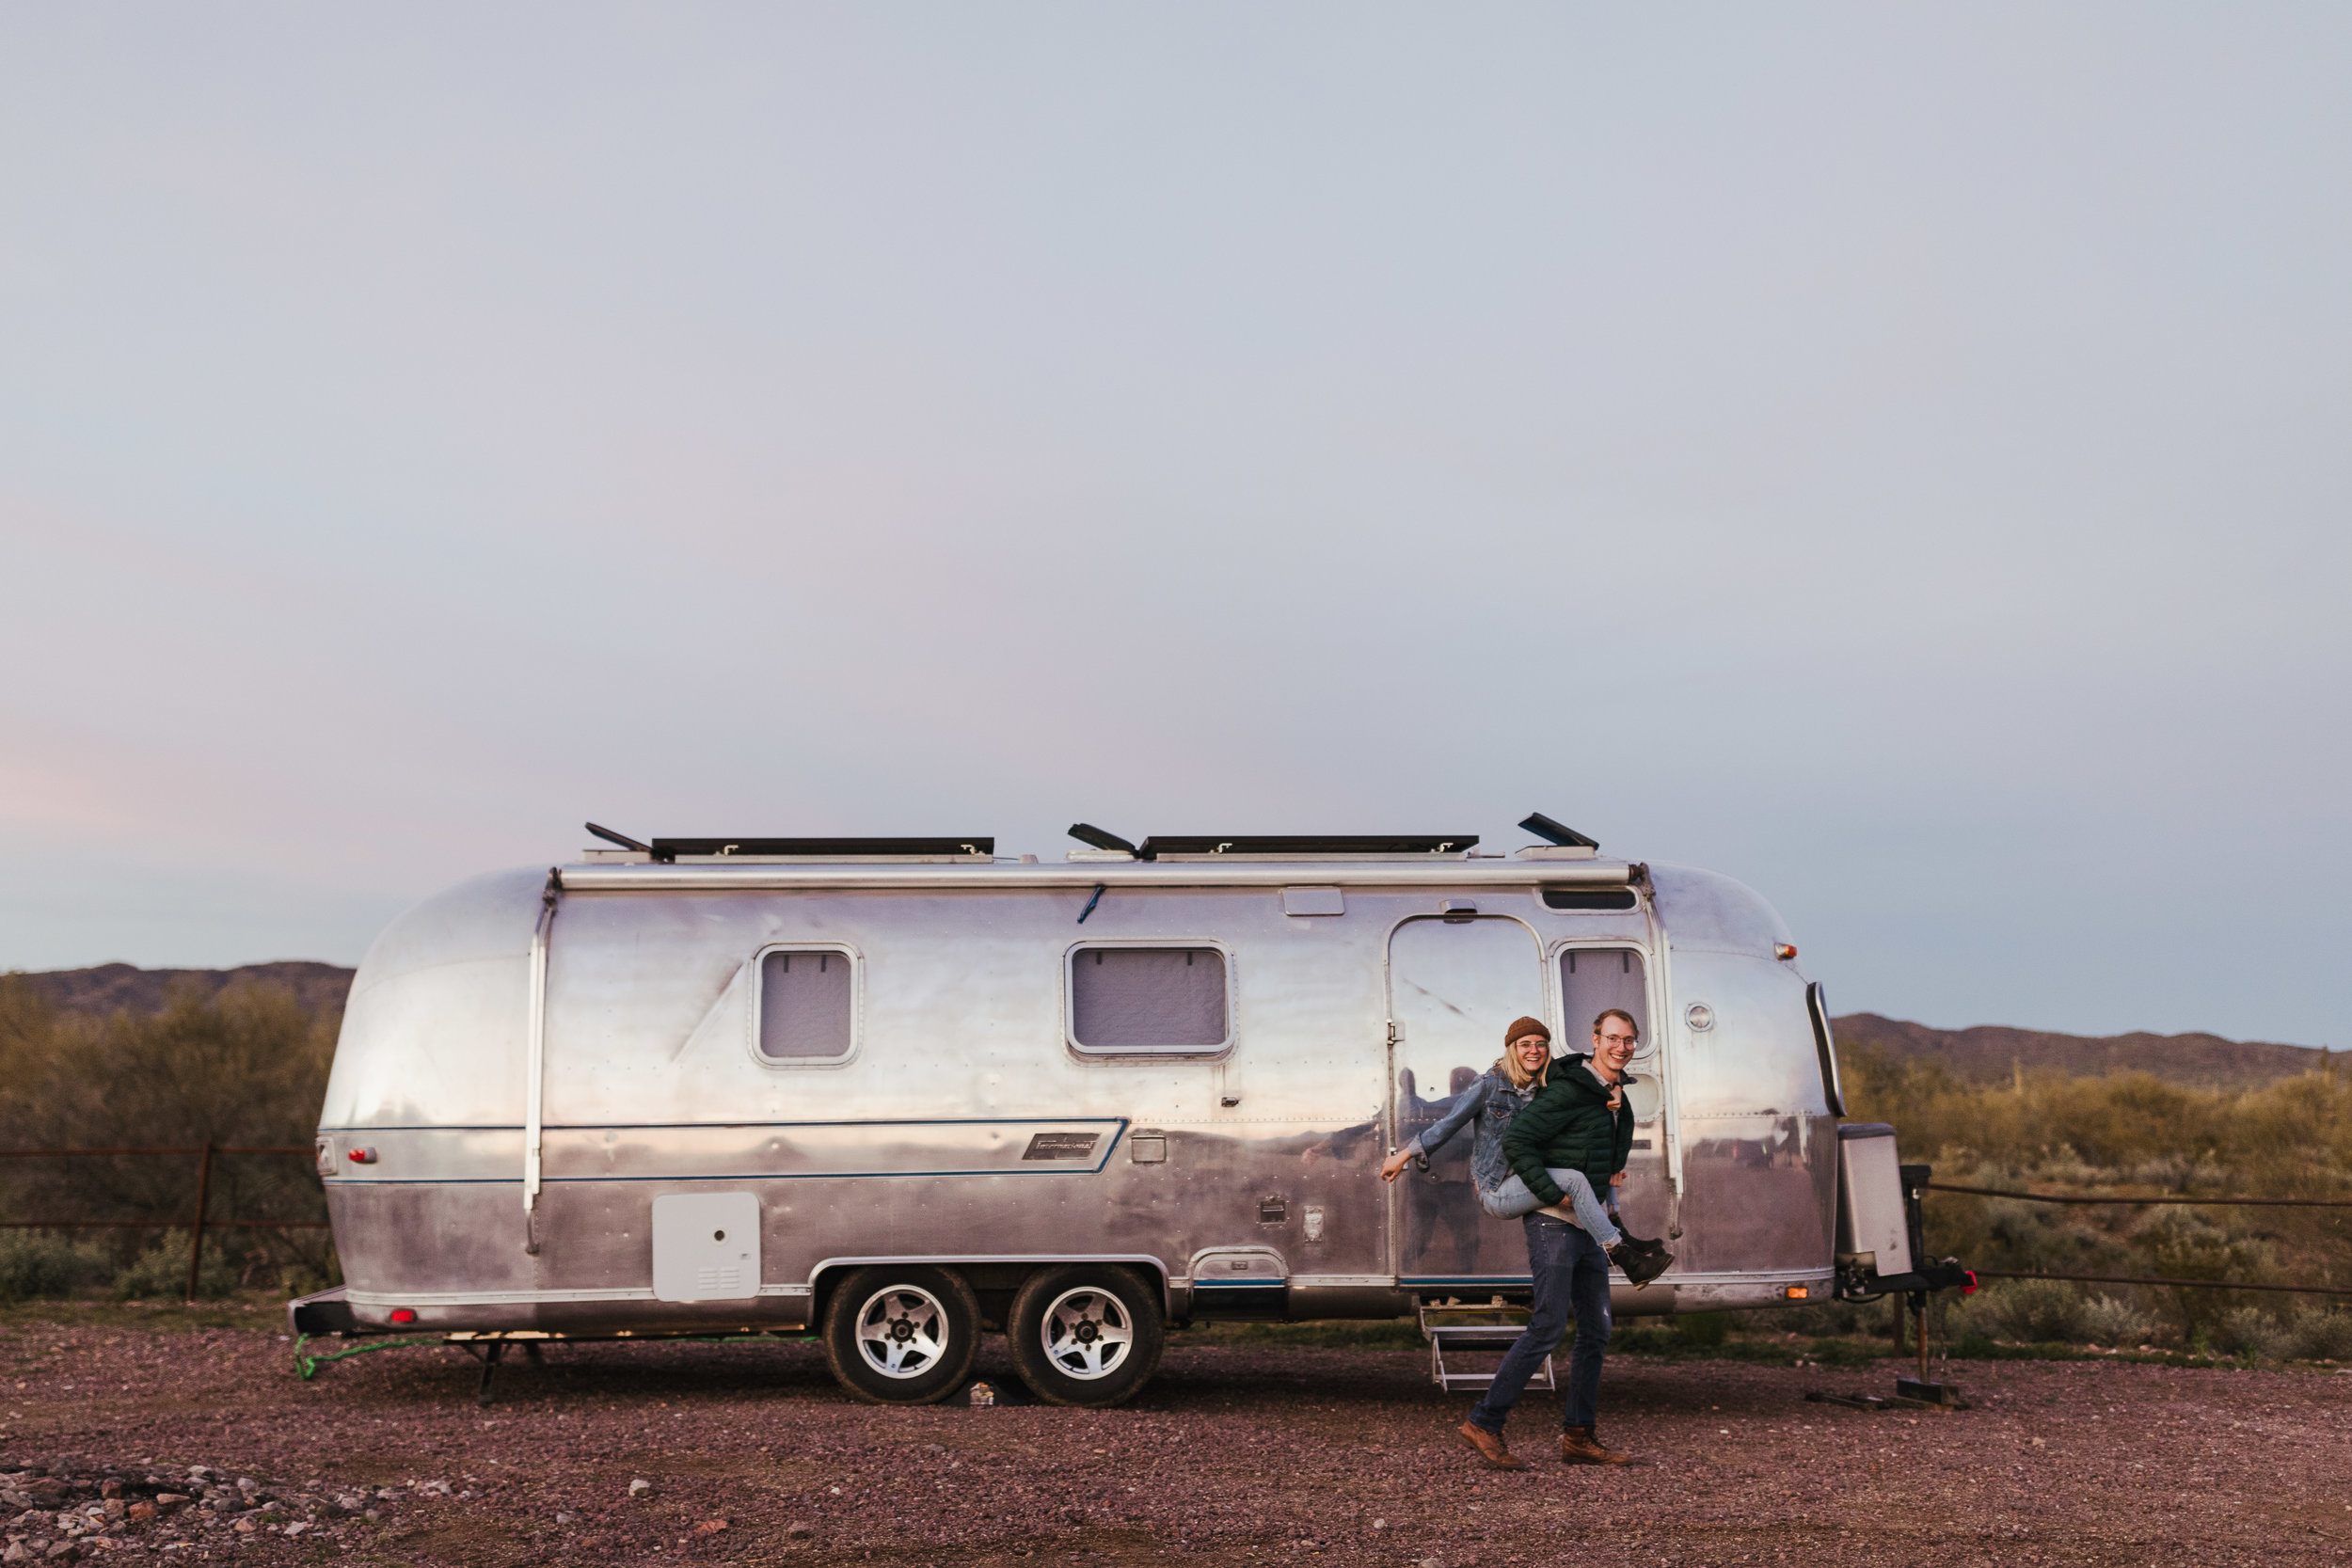 Nate and Megan on BLM land in Arizona